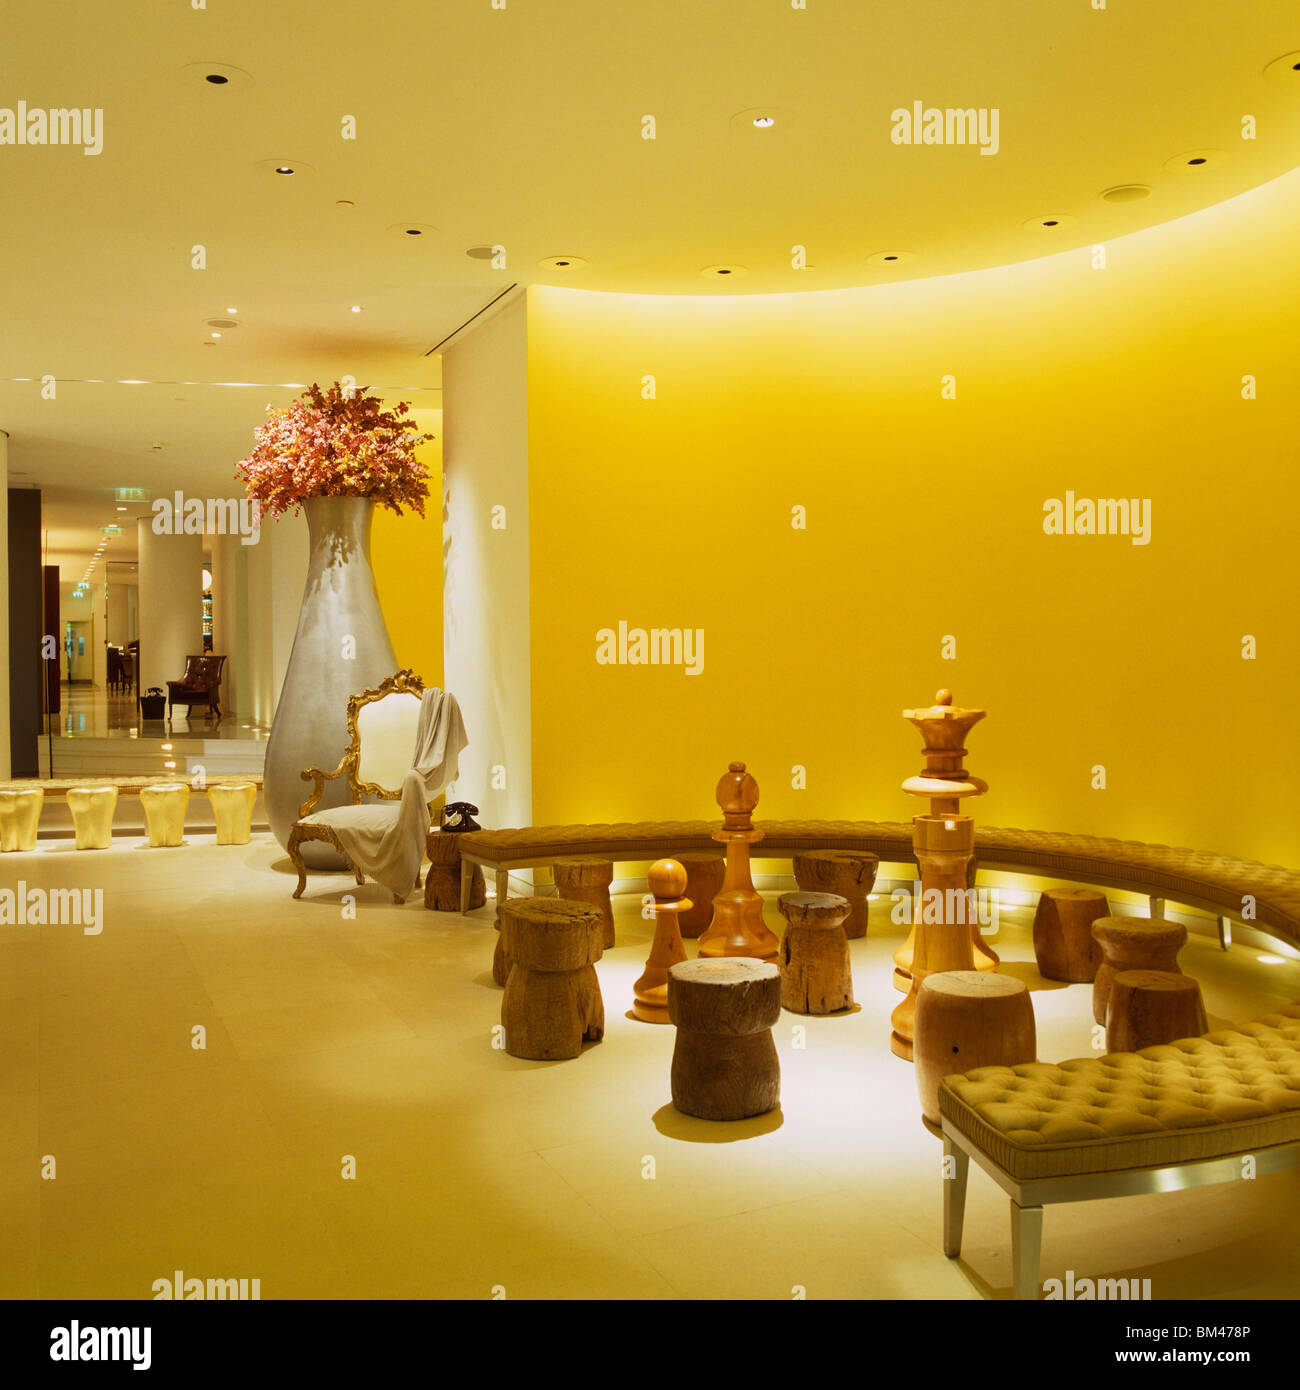 Hotel Entrance Foyer : Seating area and entrance foyer designed by philippe starck st